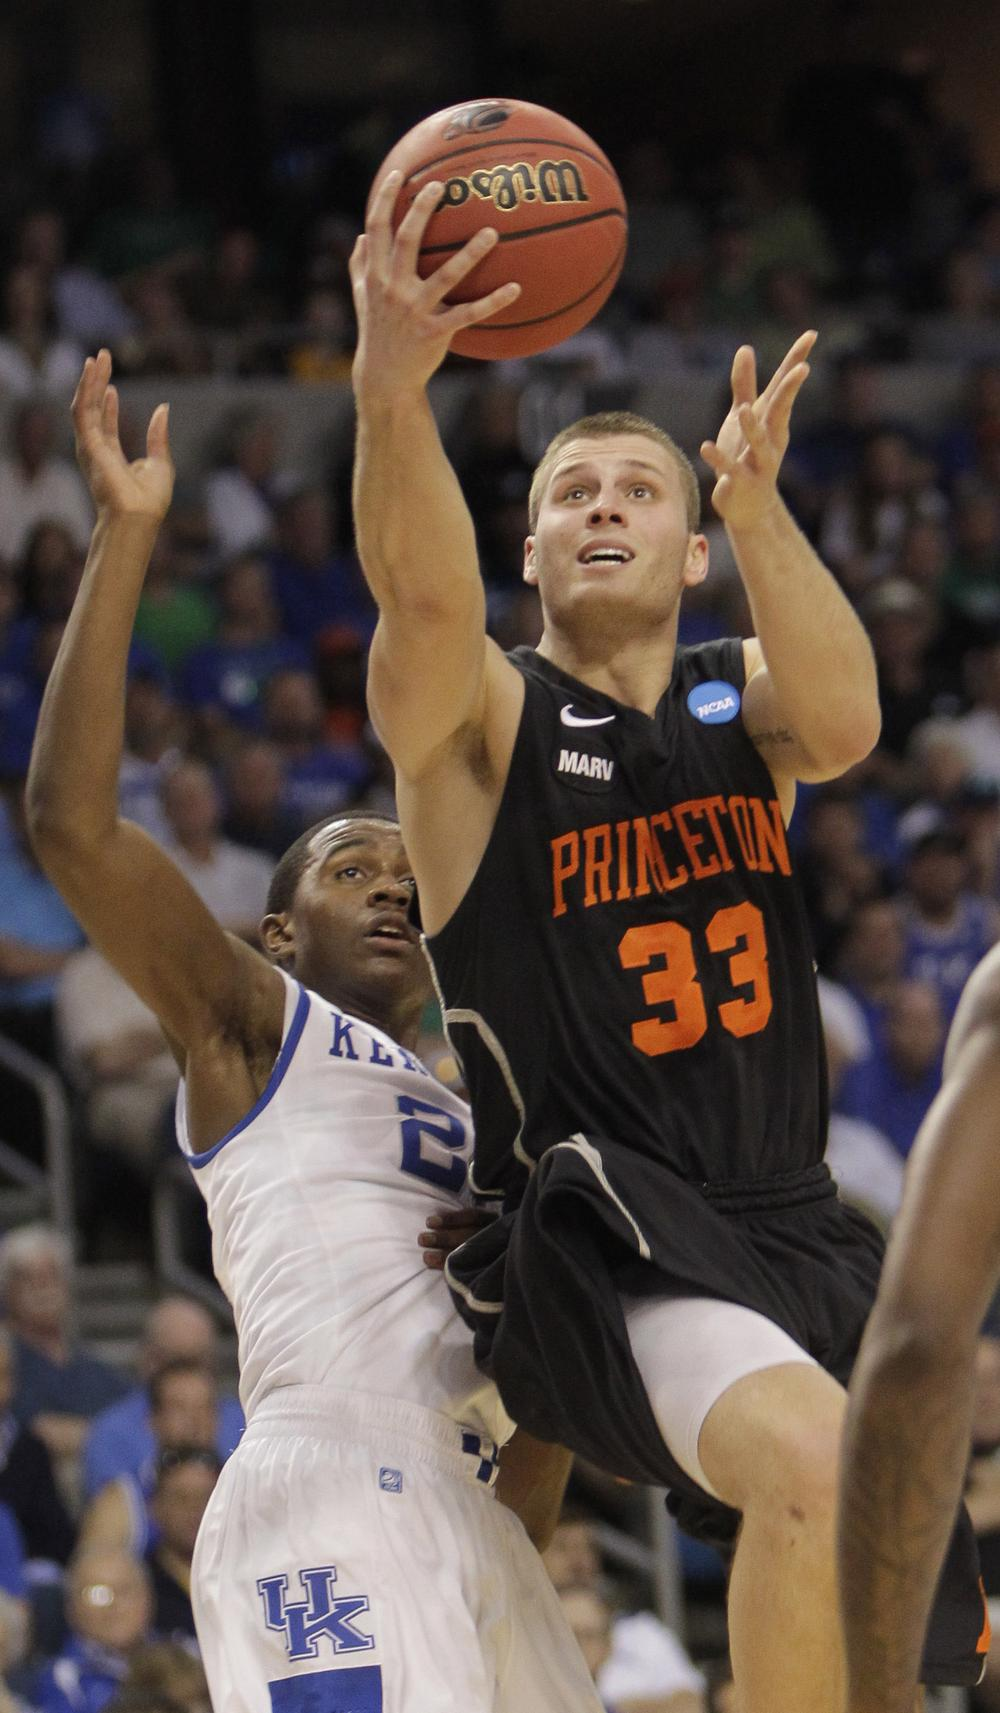 Princeton (13) gave Kentucky (4) a run for their money, but in the end the Ivy League champs fell short in the final seconds. (AP)